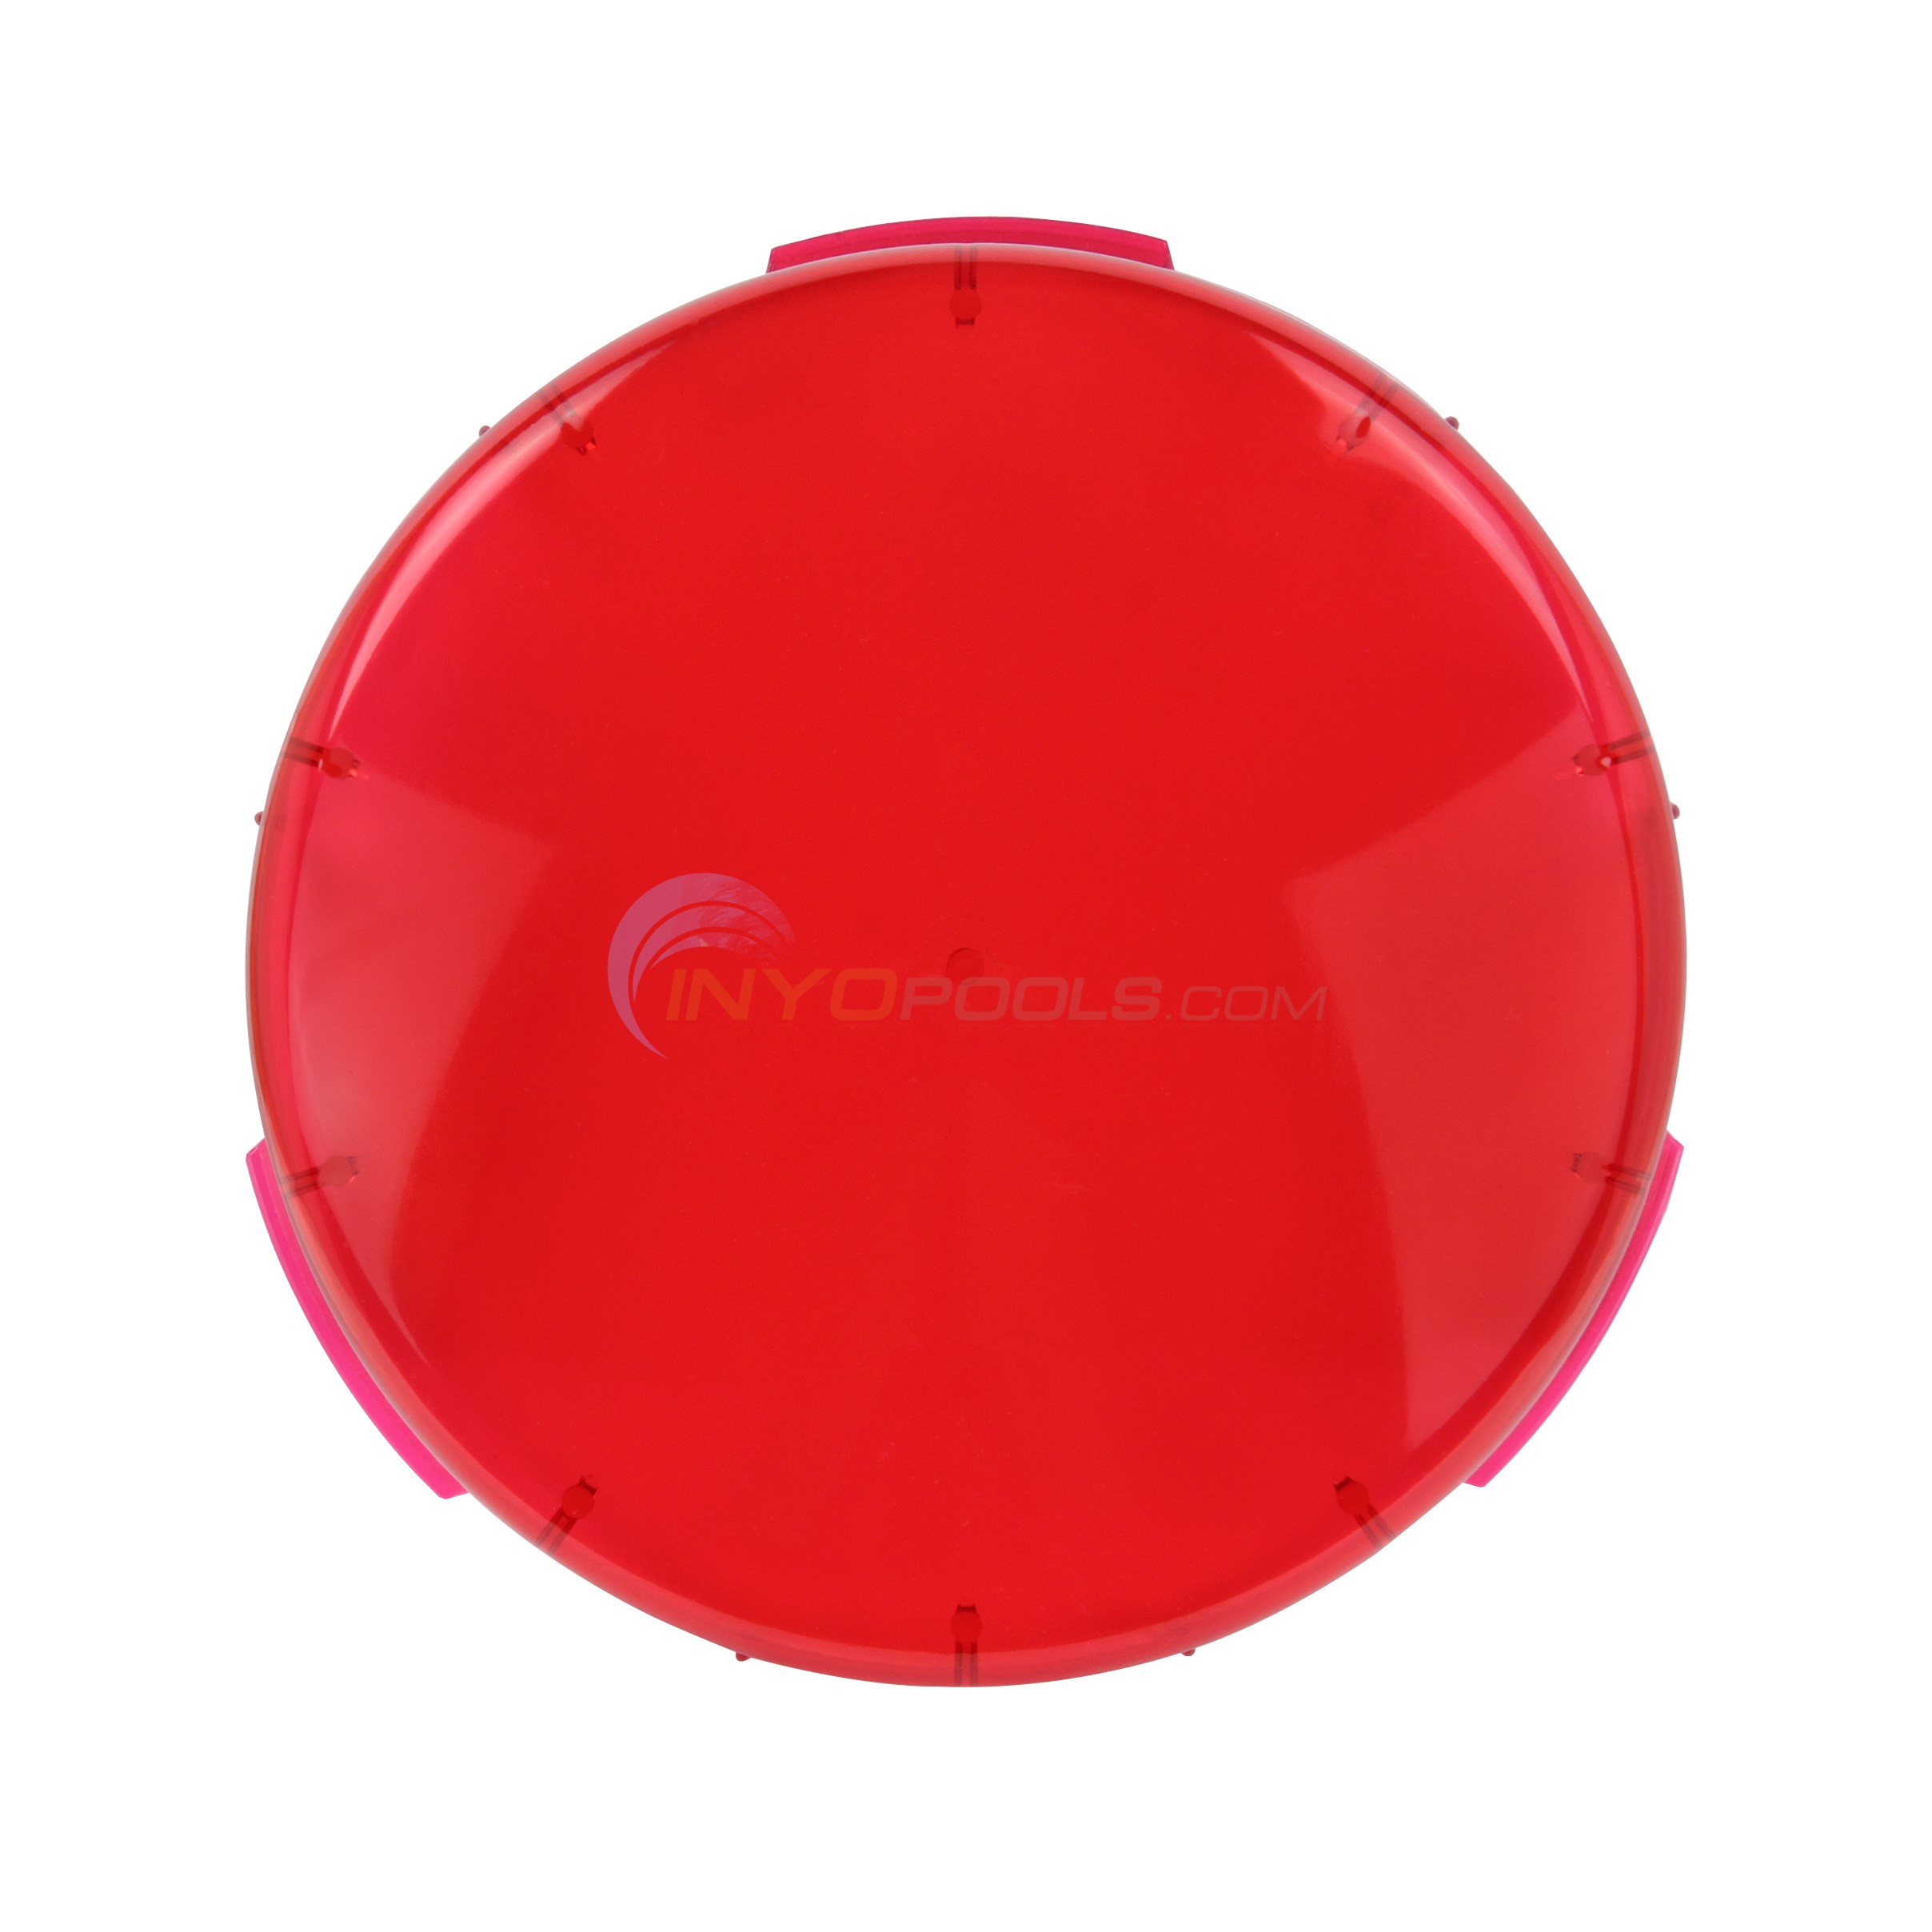 Kwik-change Lens Cover (Red)